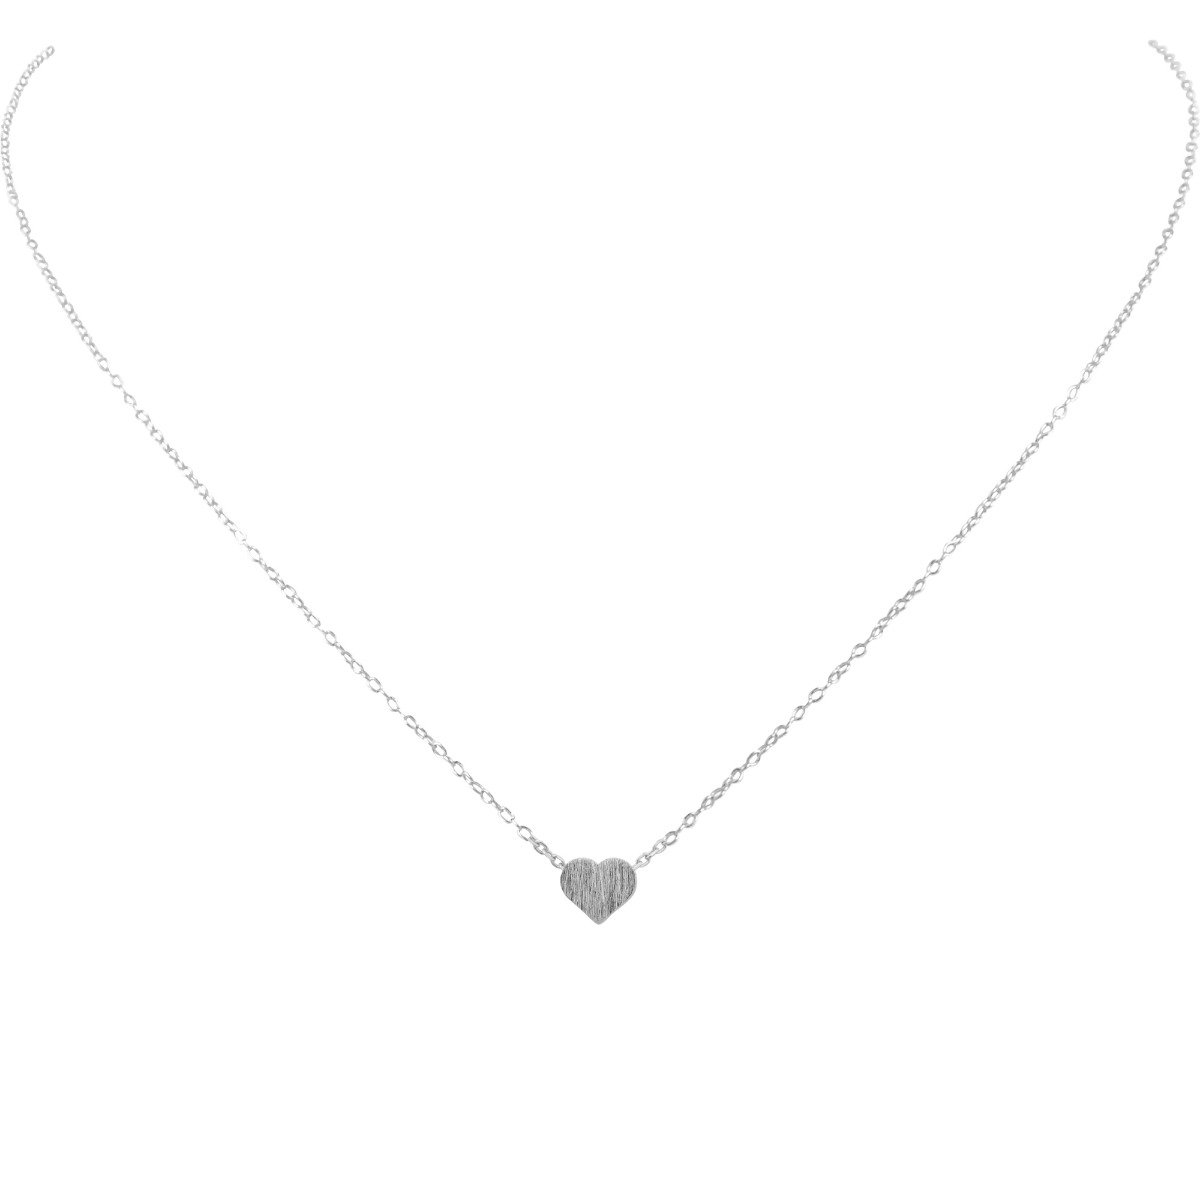 2bd1f43c59 Humble Chic Tiny Heart Necklace - Delicate Dainty Pendant Chain Link ...